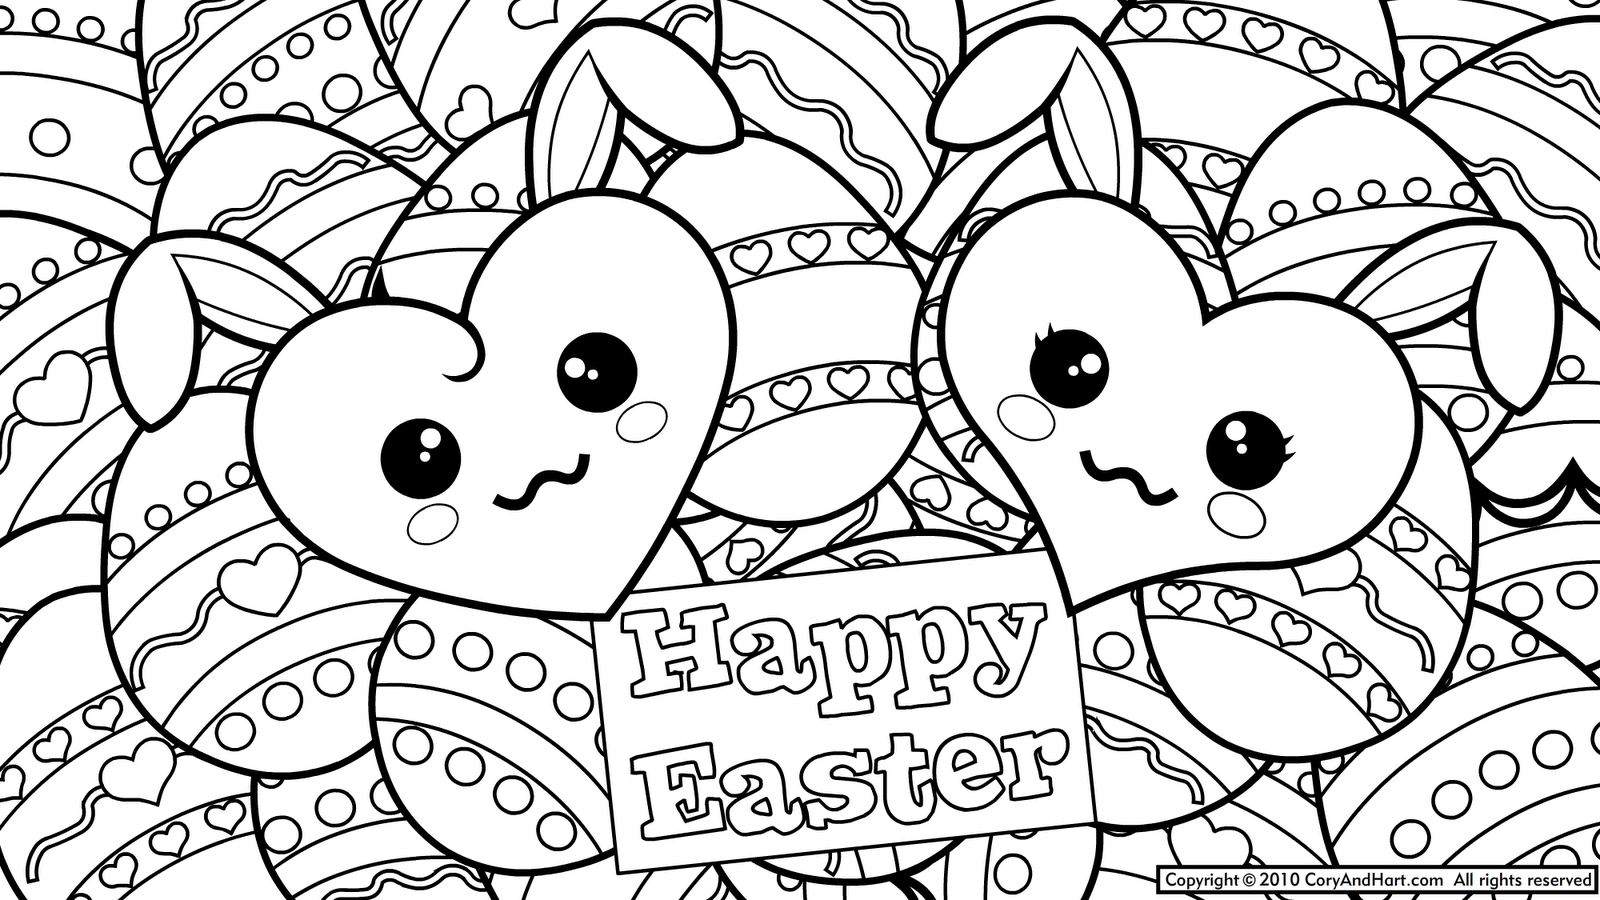 13 Cute Easter Coloring Pages gt;gt; Disney Coloring Pages ...